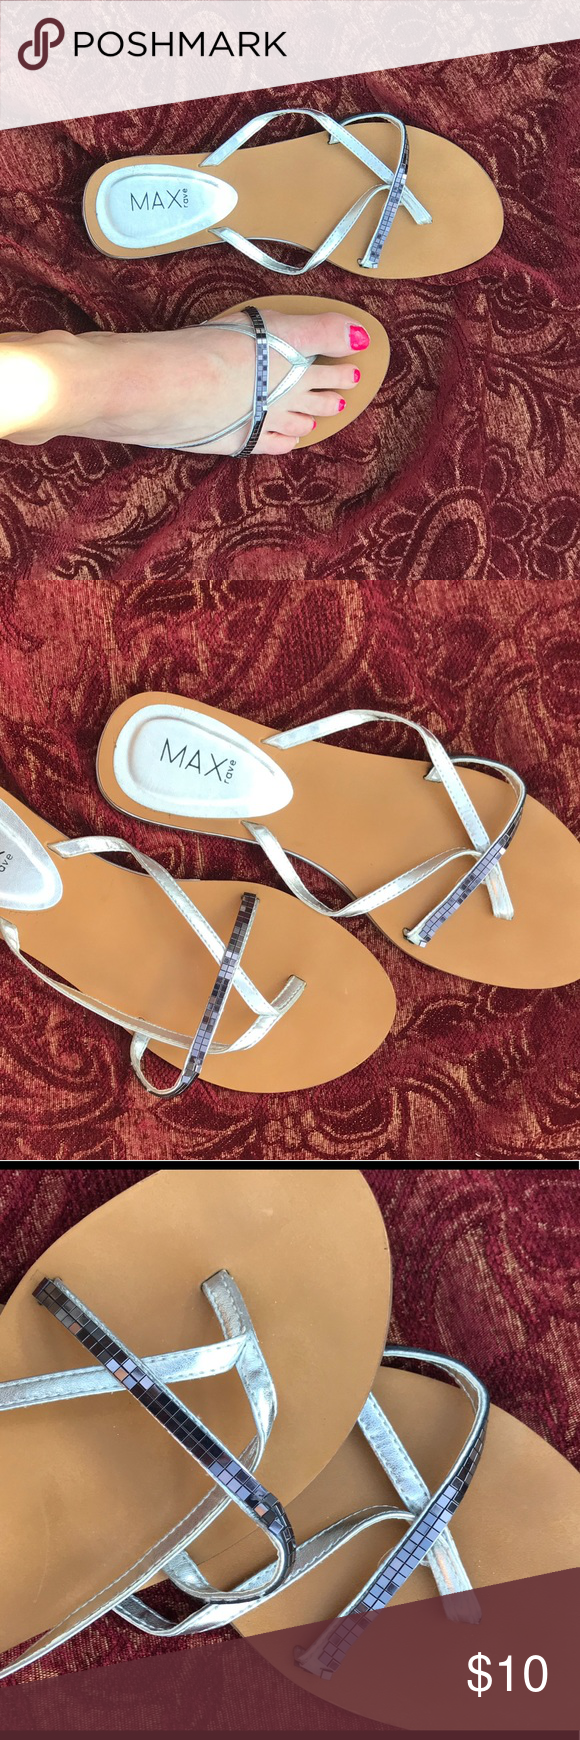 a326af90b60063 💕👡Sparkly Silver Summer Sandals Size 8 Brand  Max Rave Used Some beading  at the base has come loose but not noticeable once on your foot. Very cute!